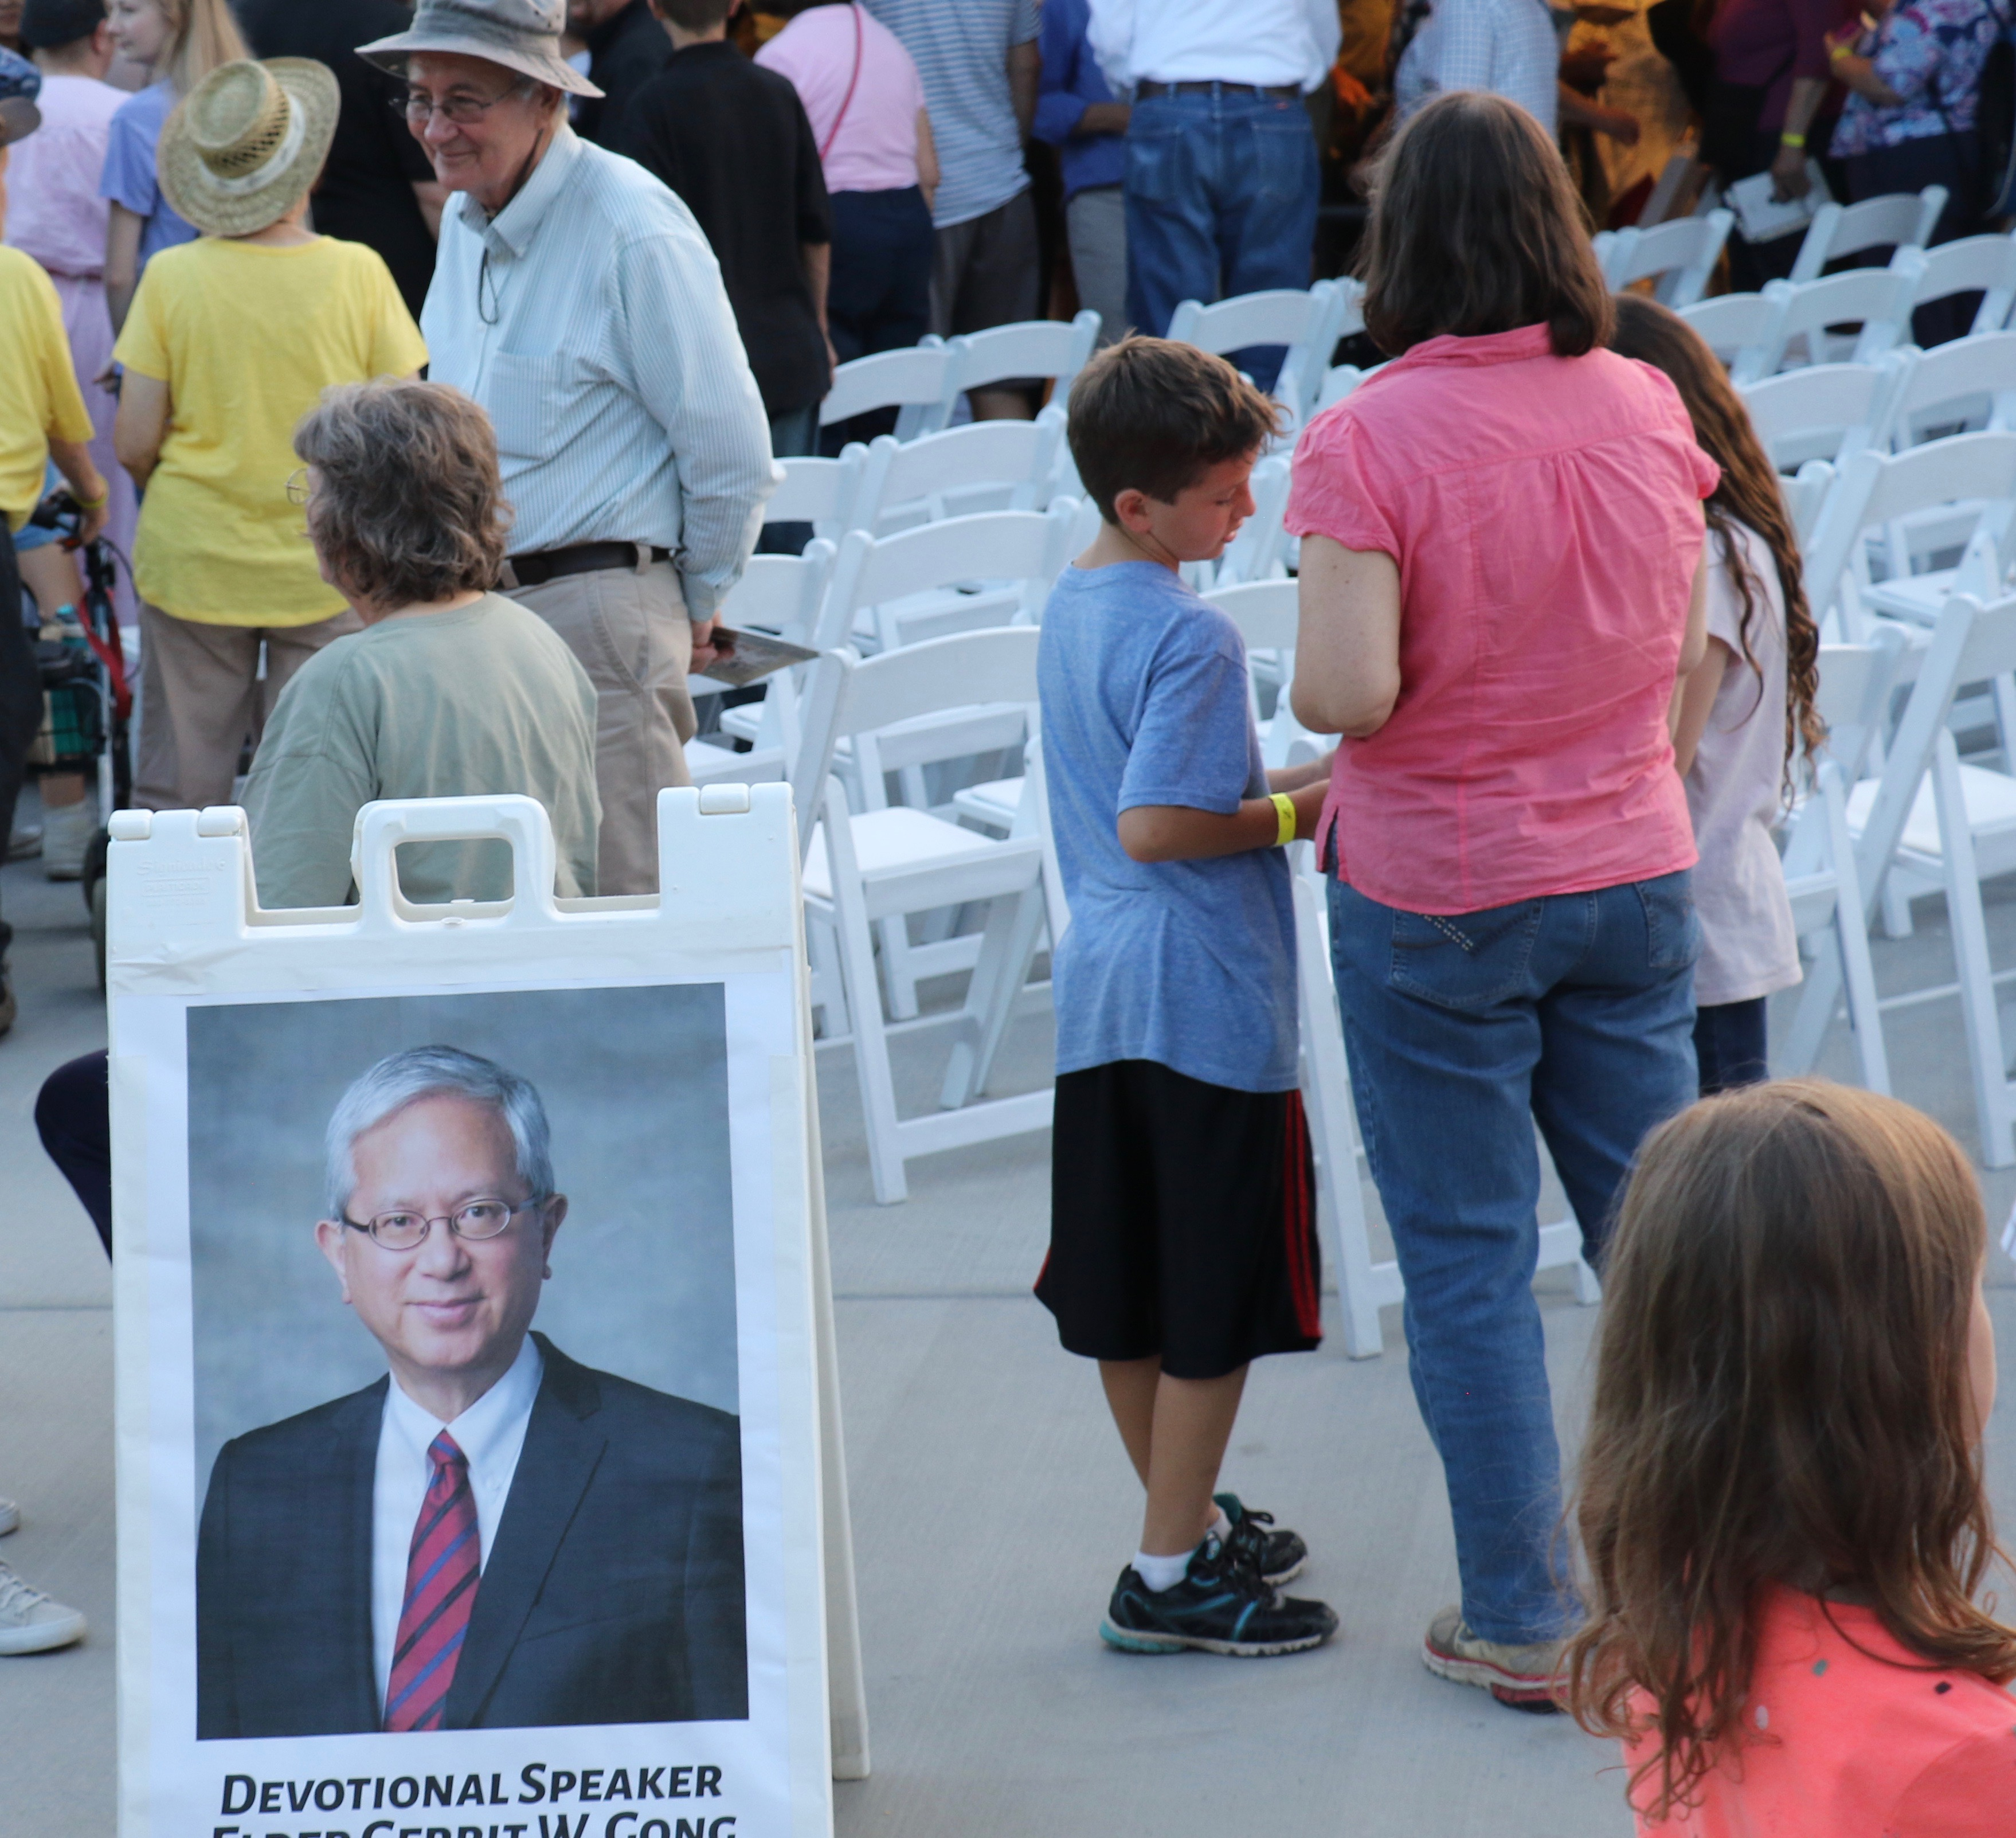 People gather on July 16, 2018, at pavilion at Utah's This Is the Place Heritage Park prior to devotional message from Elder Gerrit W. Gong.